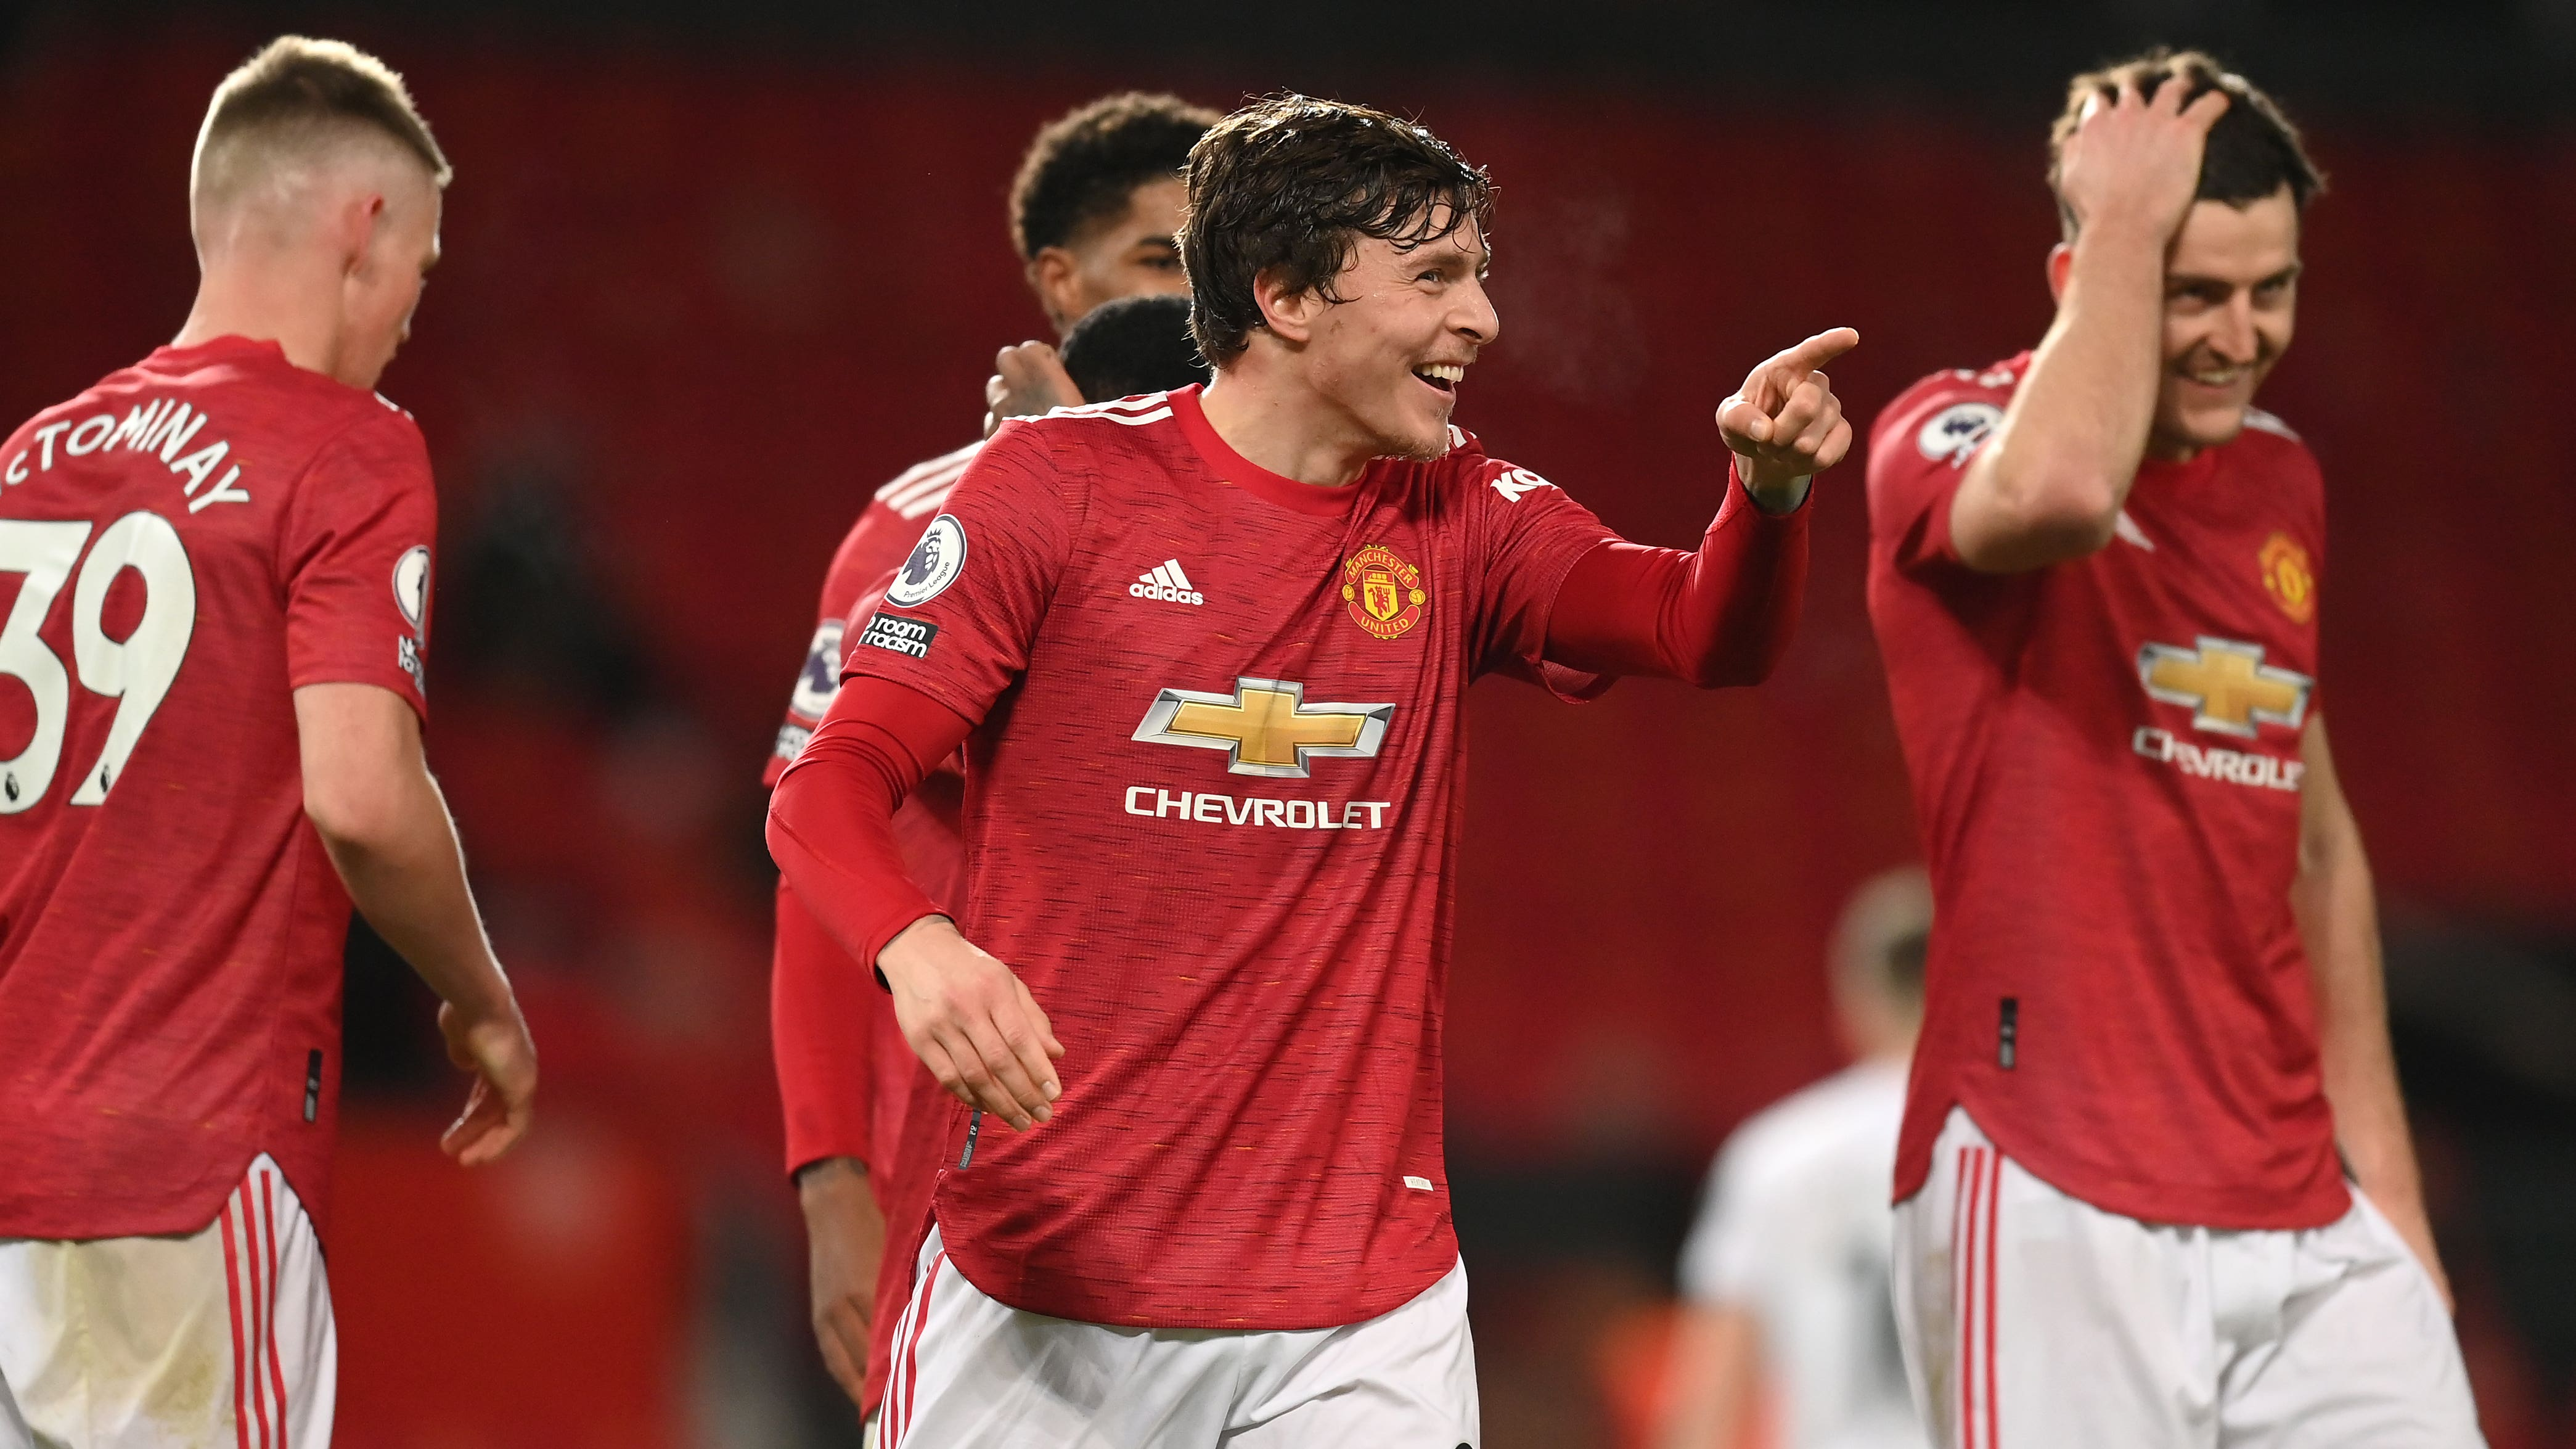 Victor Lindelof will continue playing through the pain to help Manchester  United | BT Sport